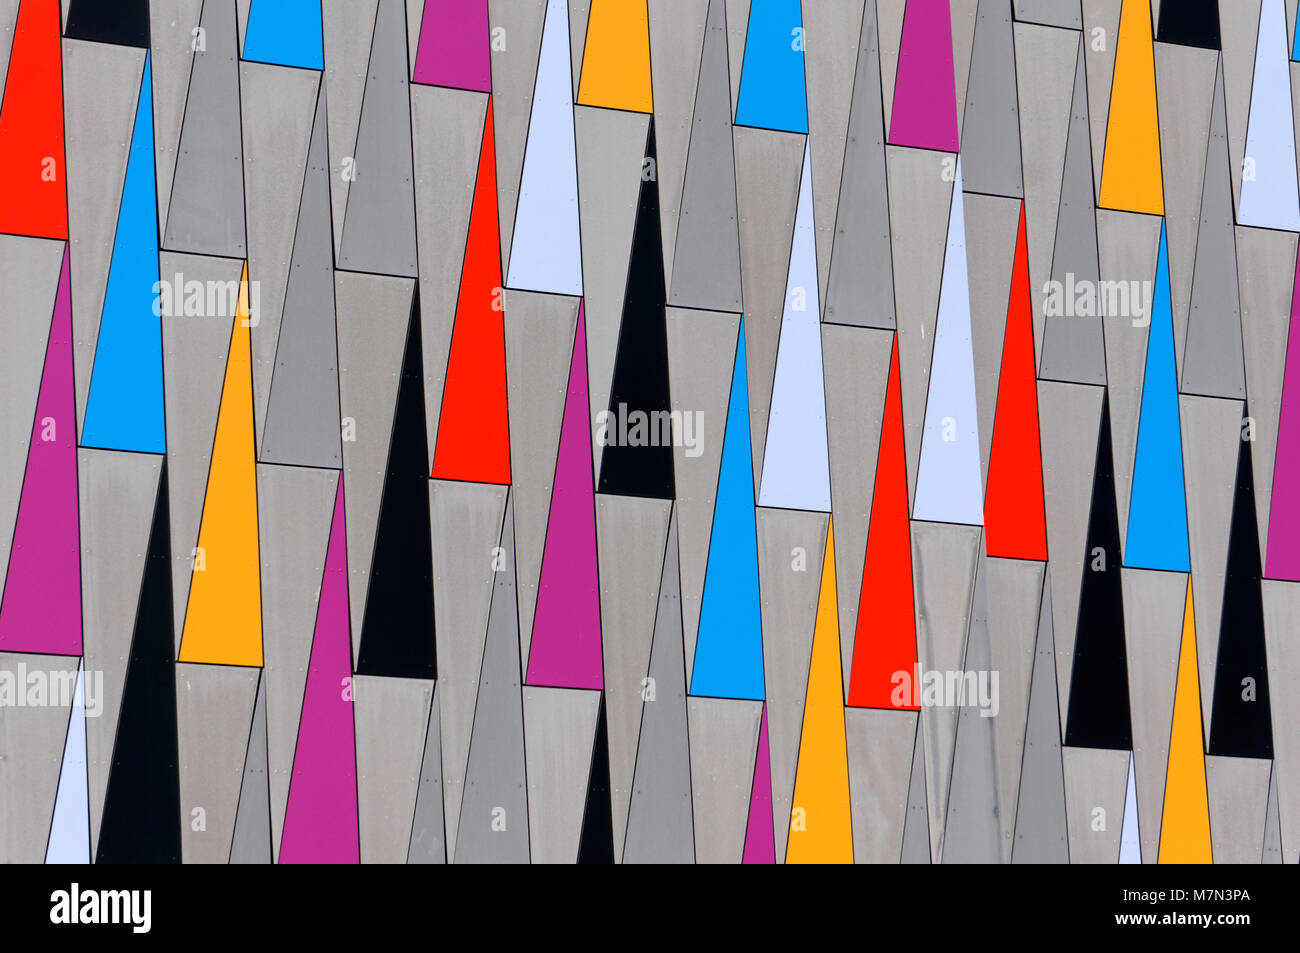 colorful-repeating-triangles-design-on-t